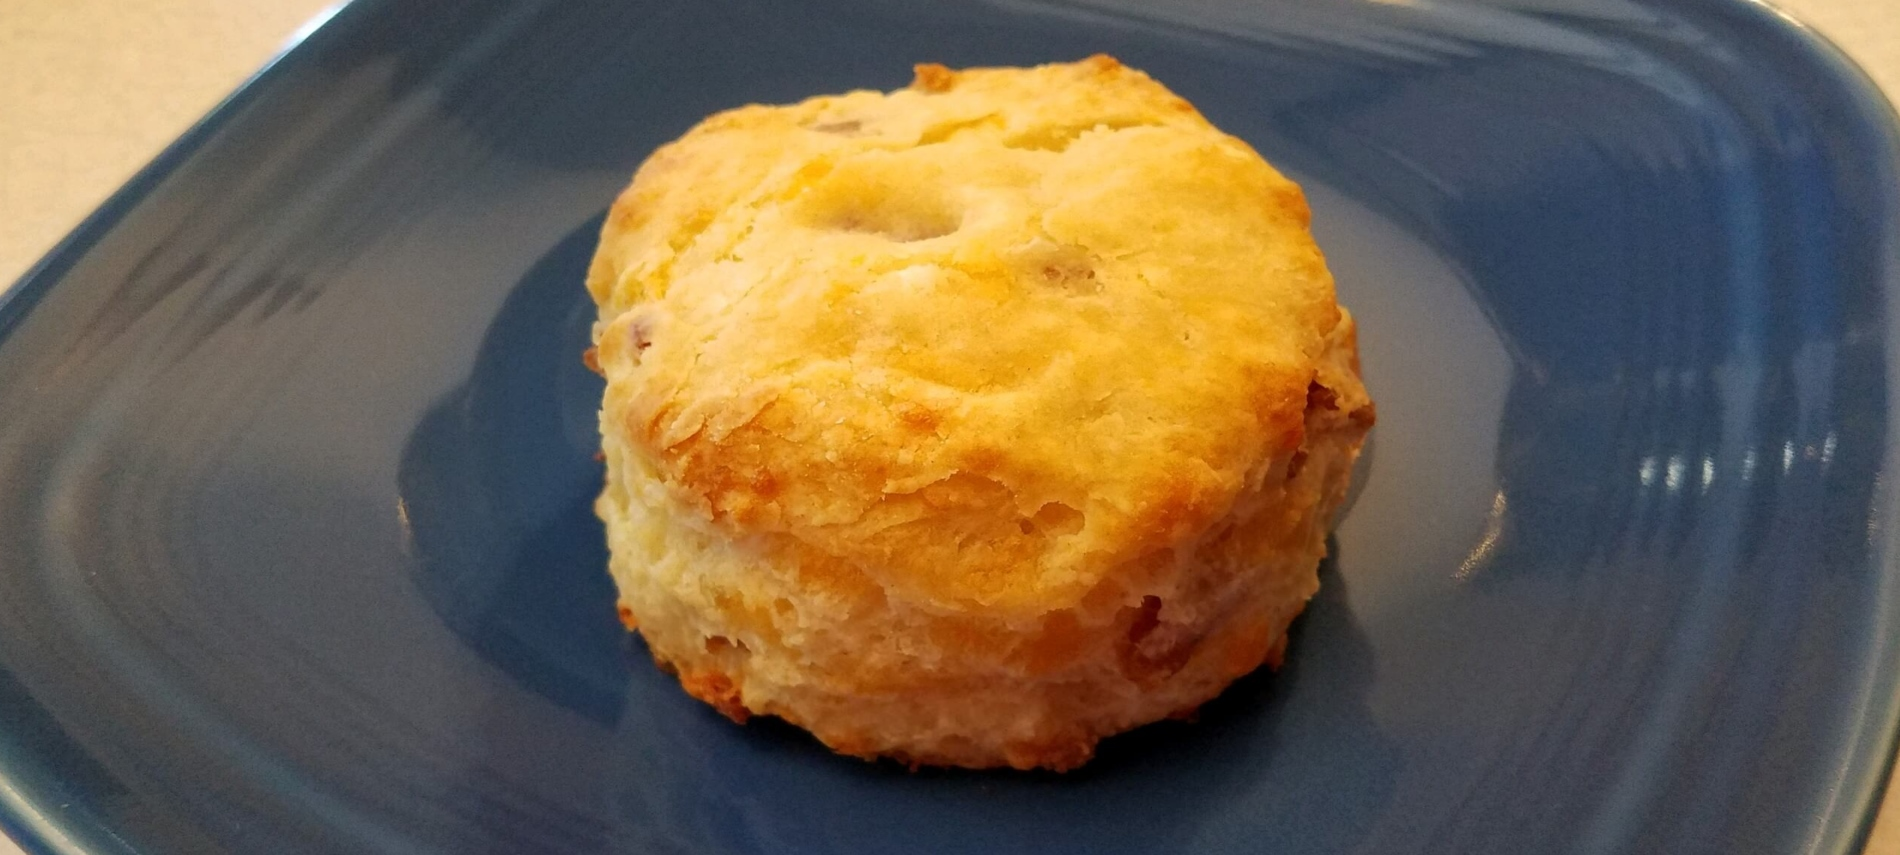 golden bacon cheddar biscuit on a blue plate